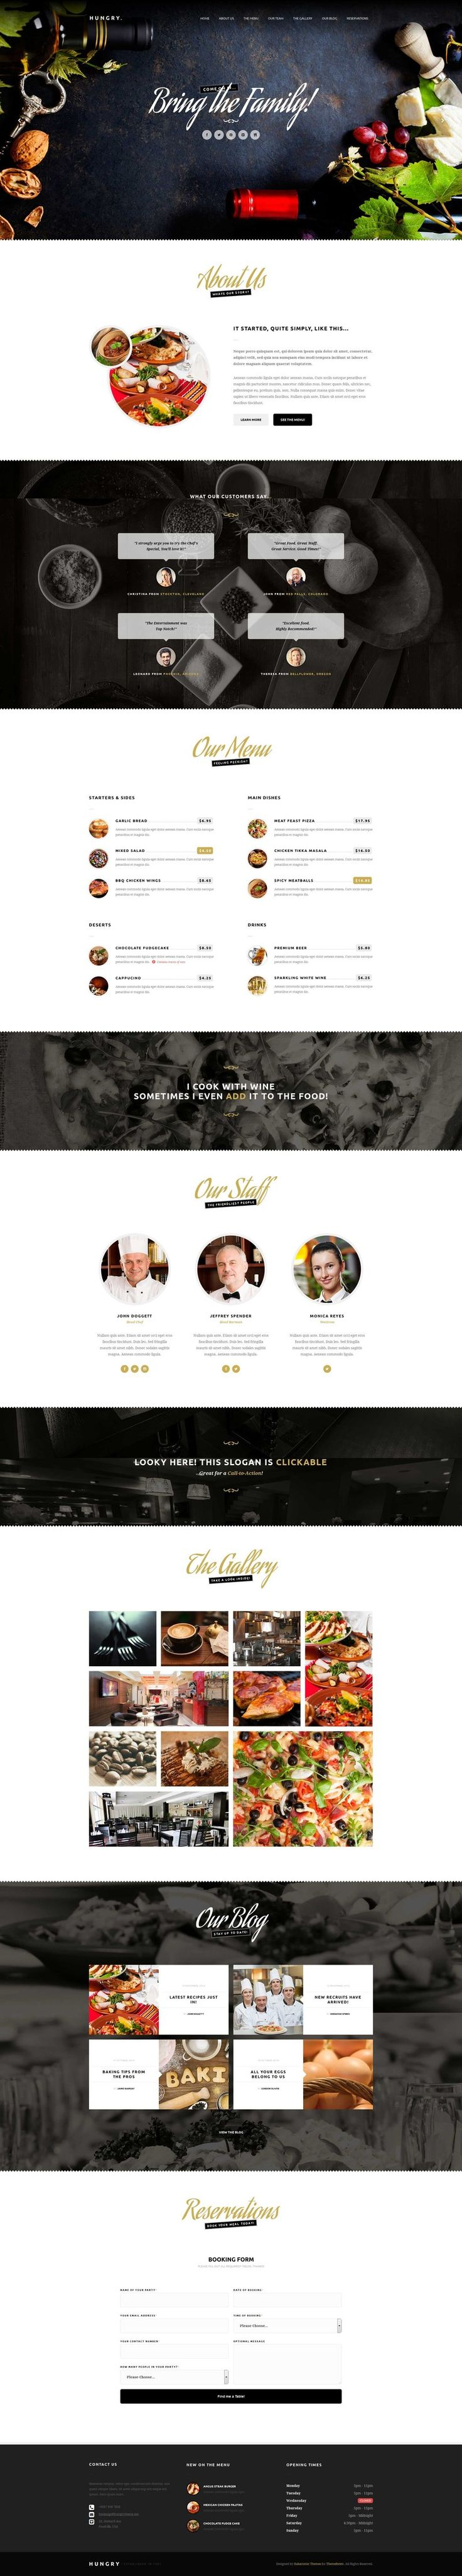 Hungry – A One-Page Restaurant Template Published by Maan Ali